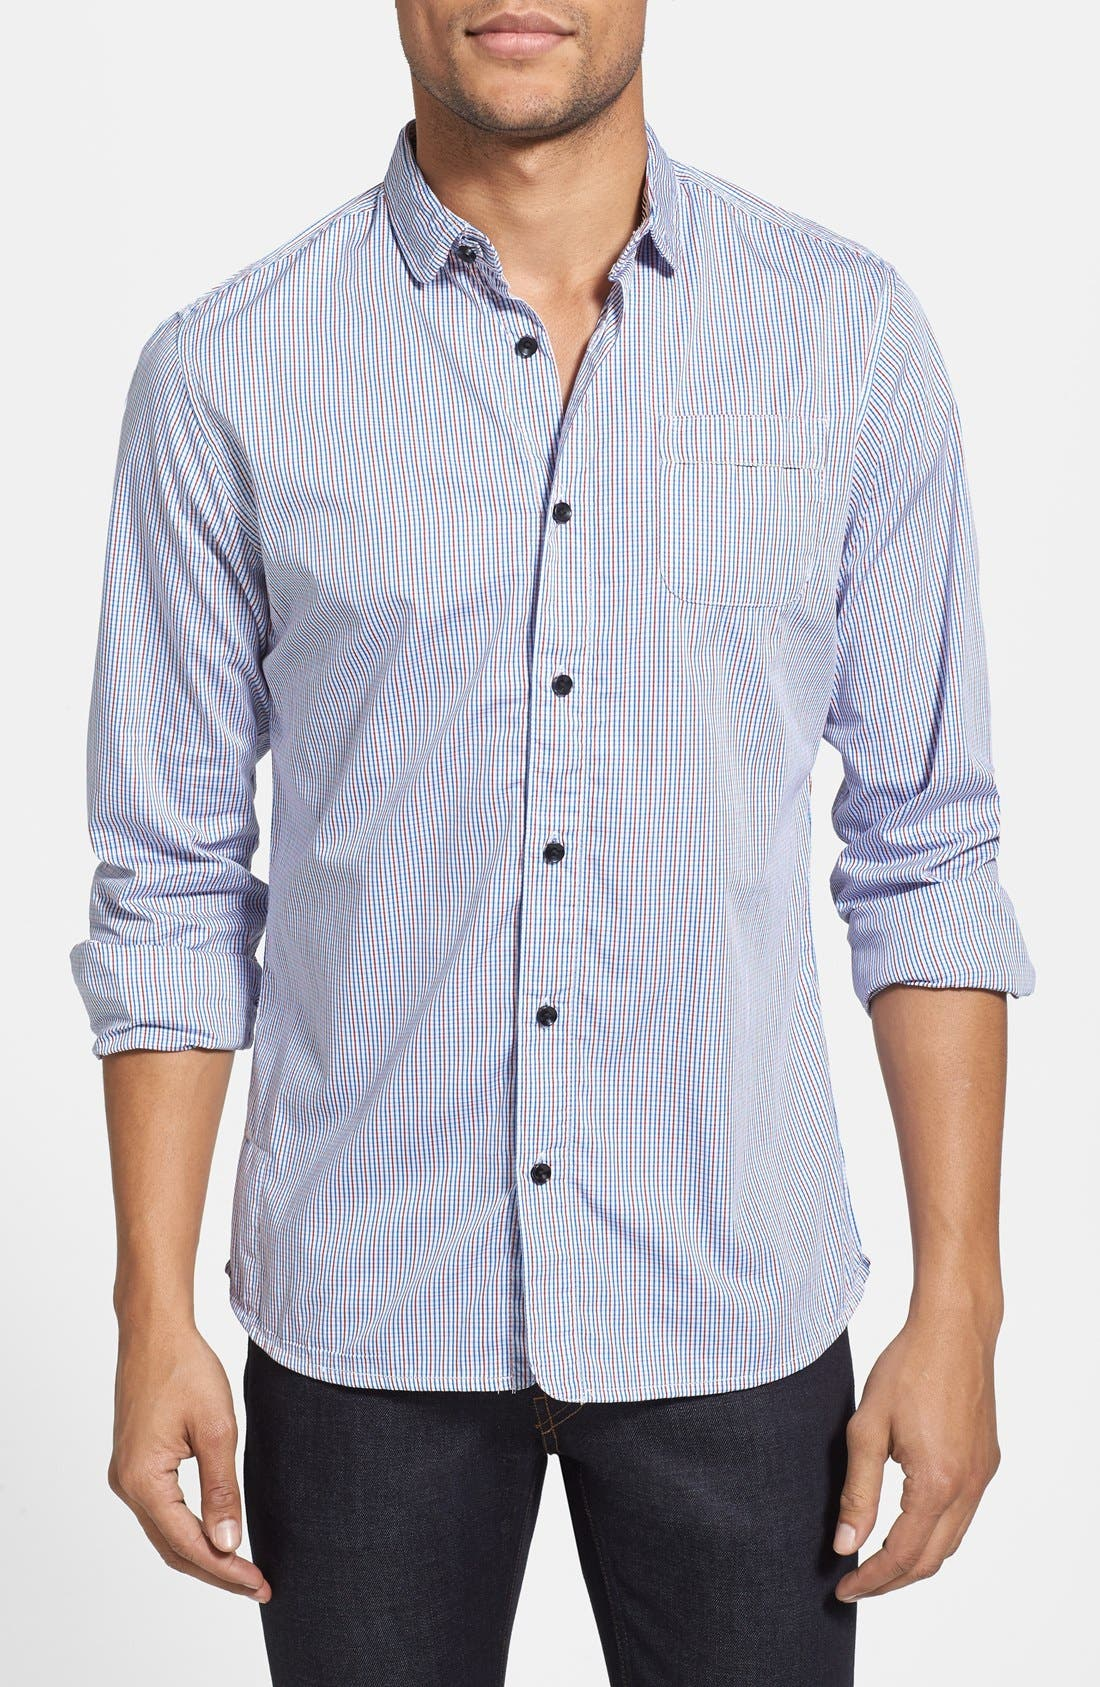 Alternate Image 1 Selected - Descendant of Thieves Slim Fit Multi Check Shirt